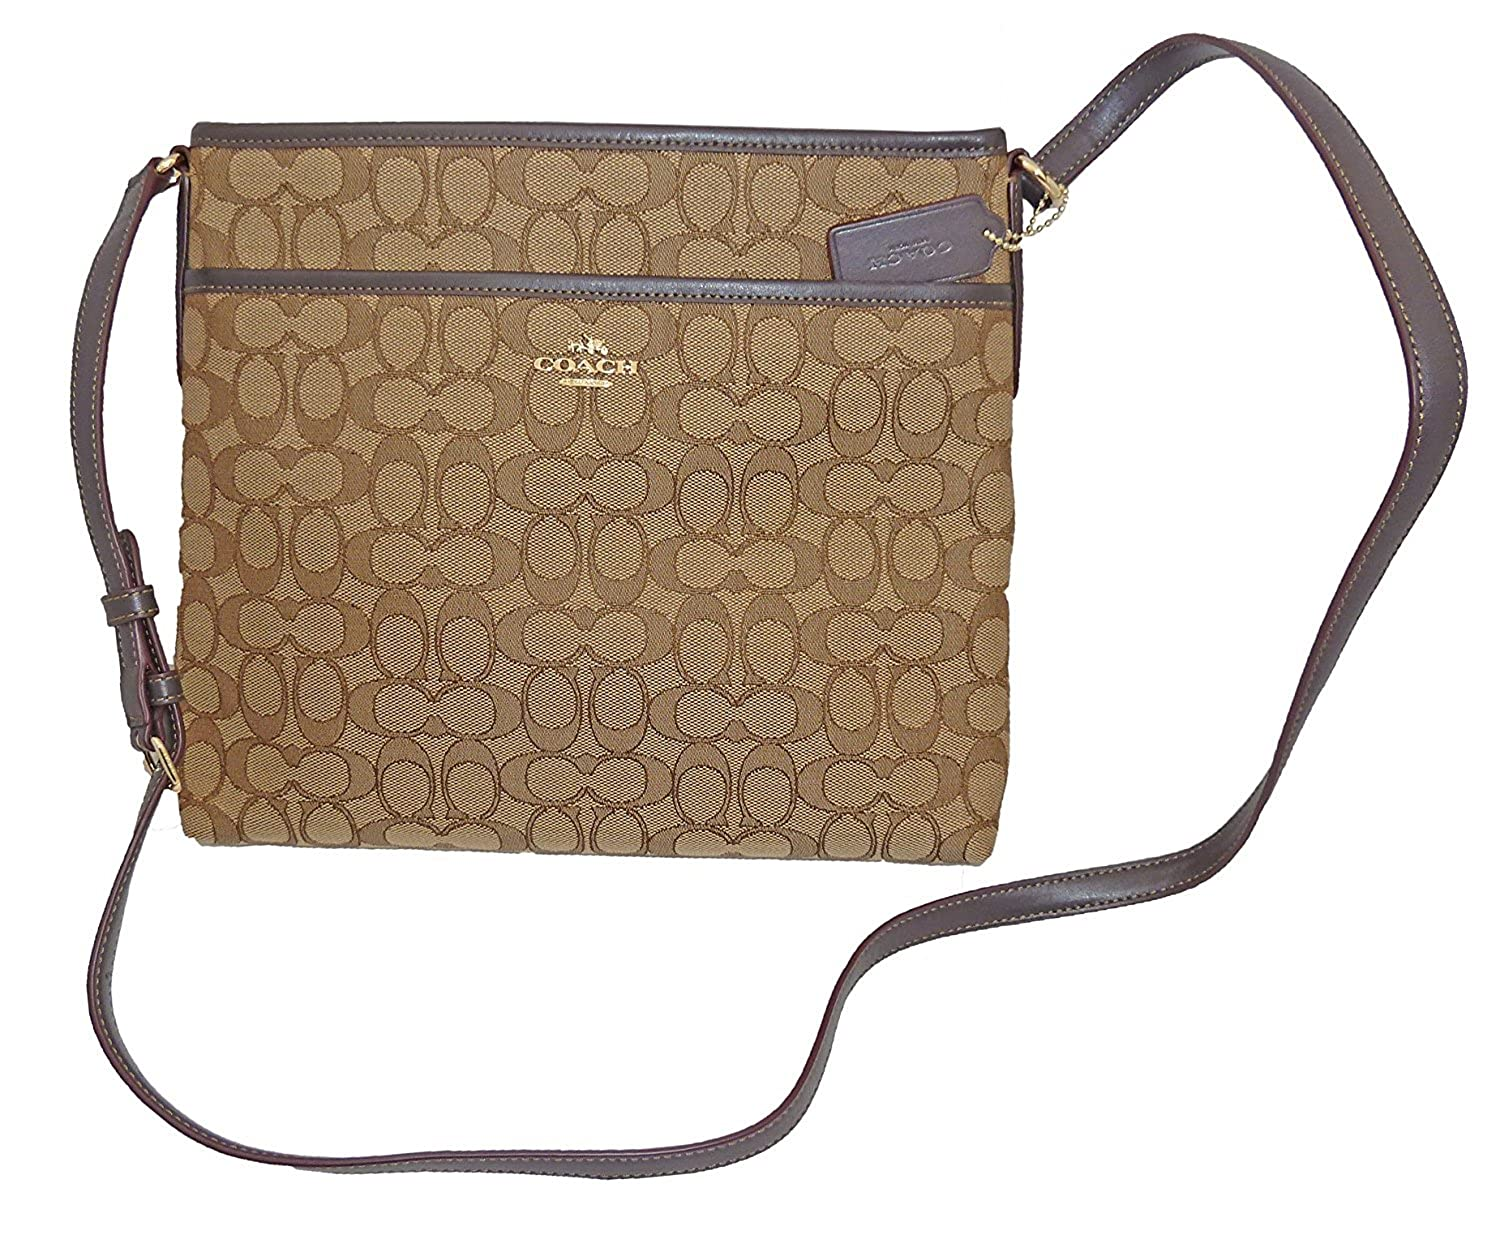 06d7b466 Coach File Bag In Outline Signature F58285